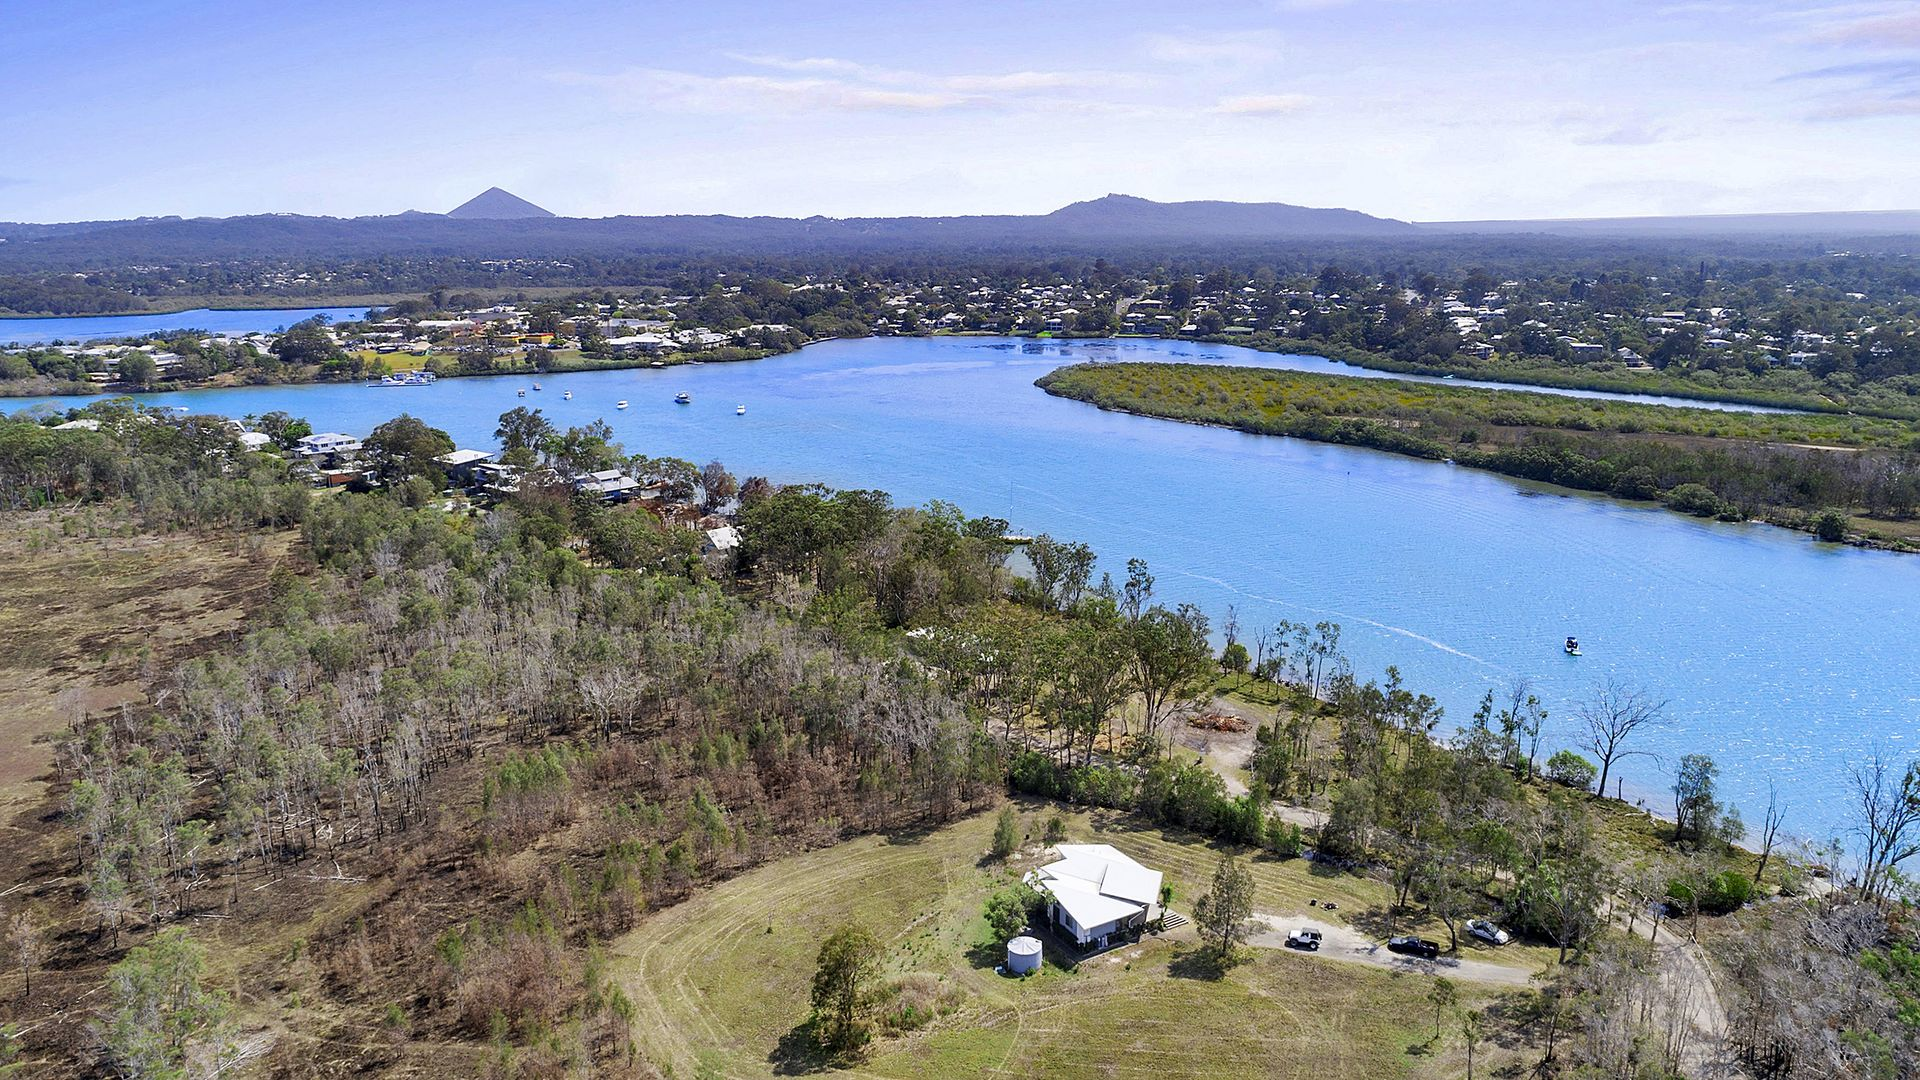 20-74 Noosa River Drive, Noosa North Shore QLD 4565, Image 1